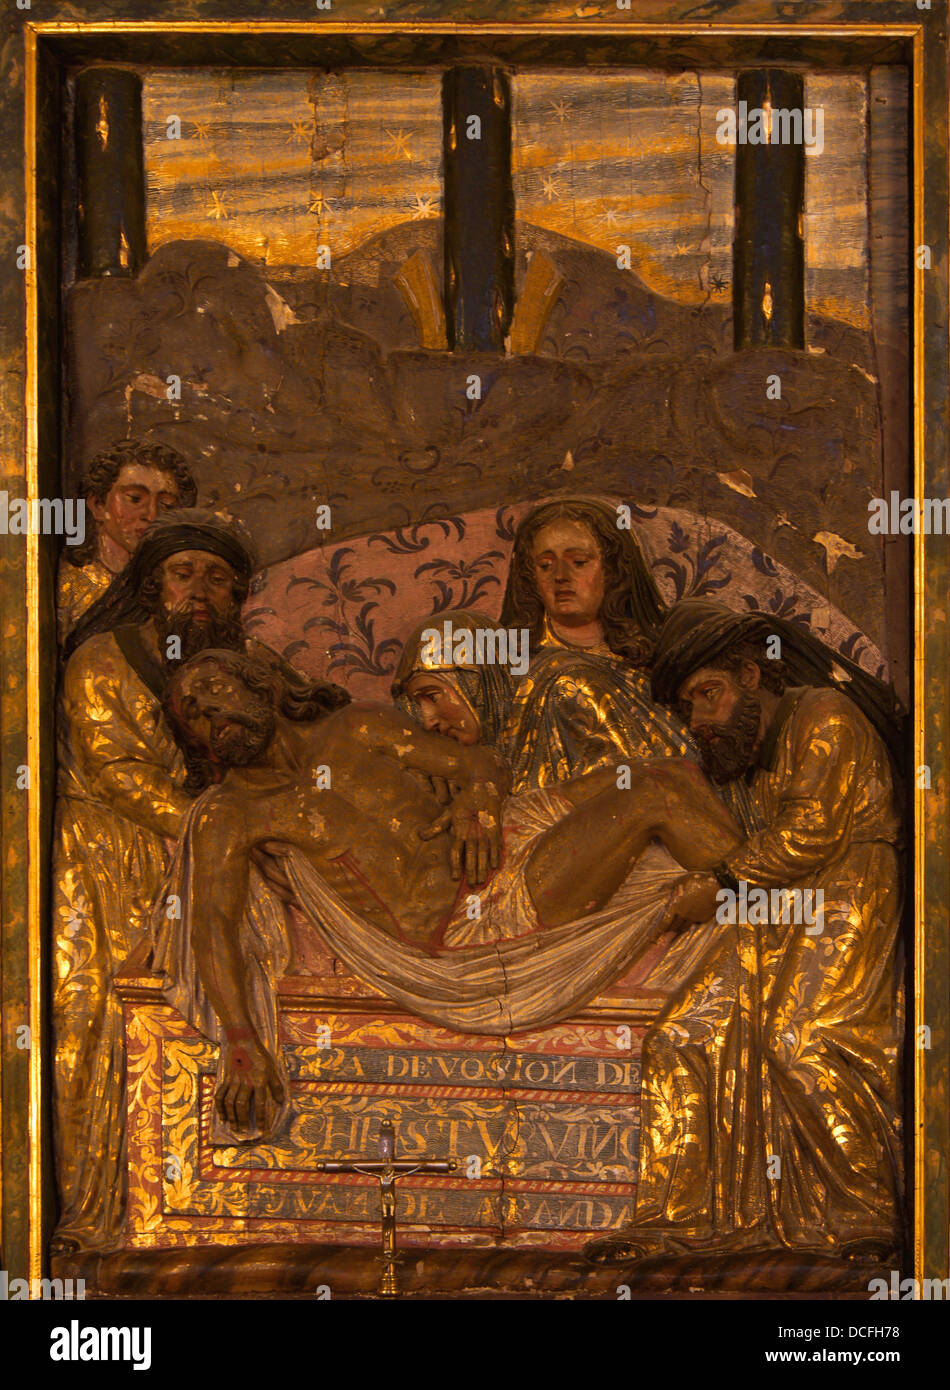 relief of the entombment of Christ, end of XVIth century, chapel n°40 (Santo Sepulcro o santos varones), Cathedral - Stock Image